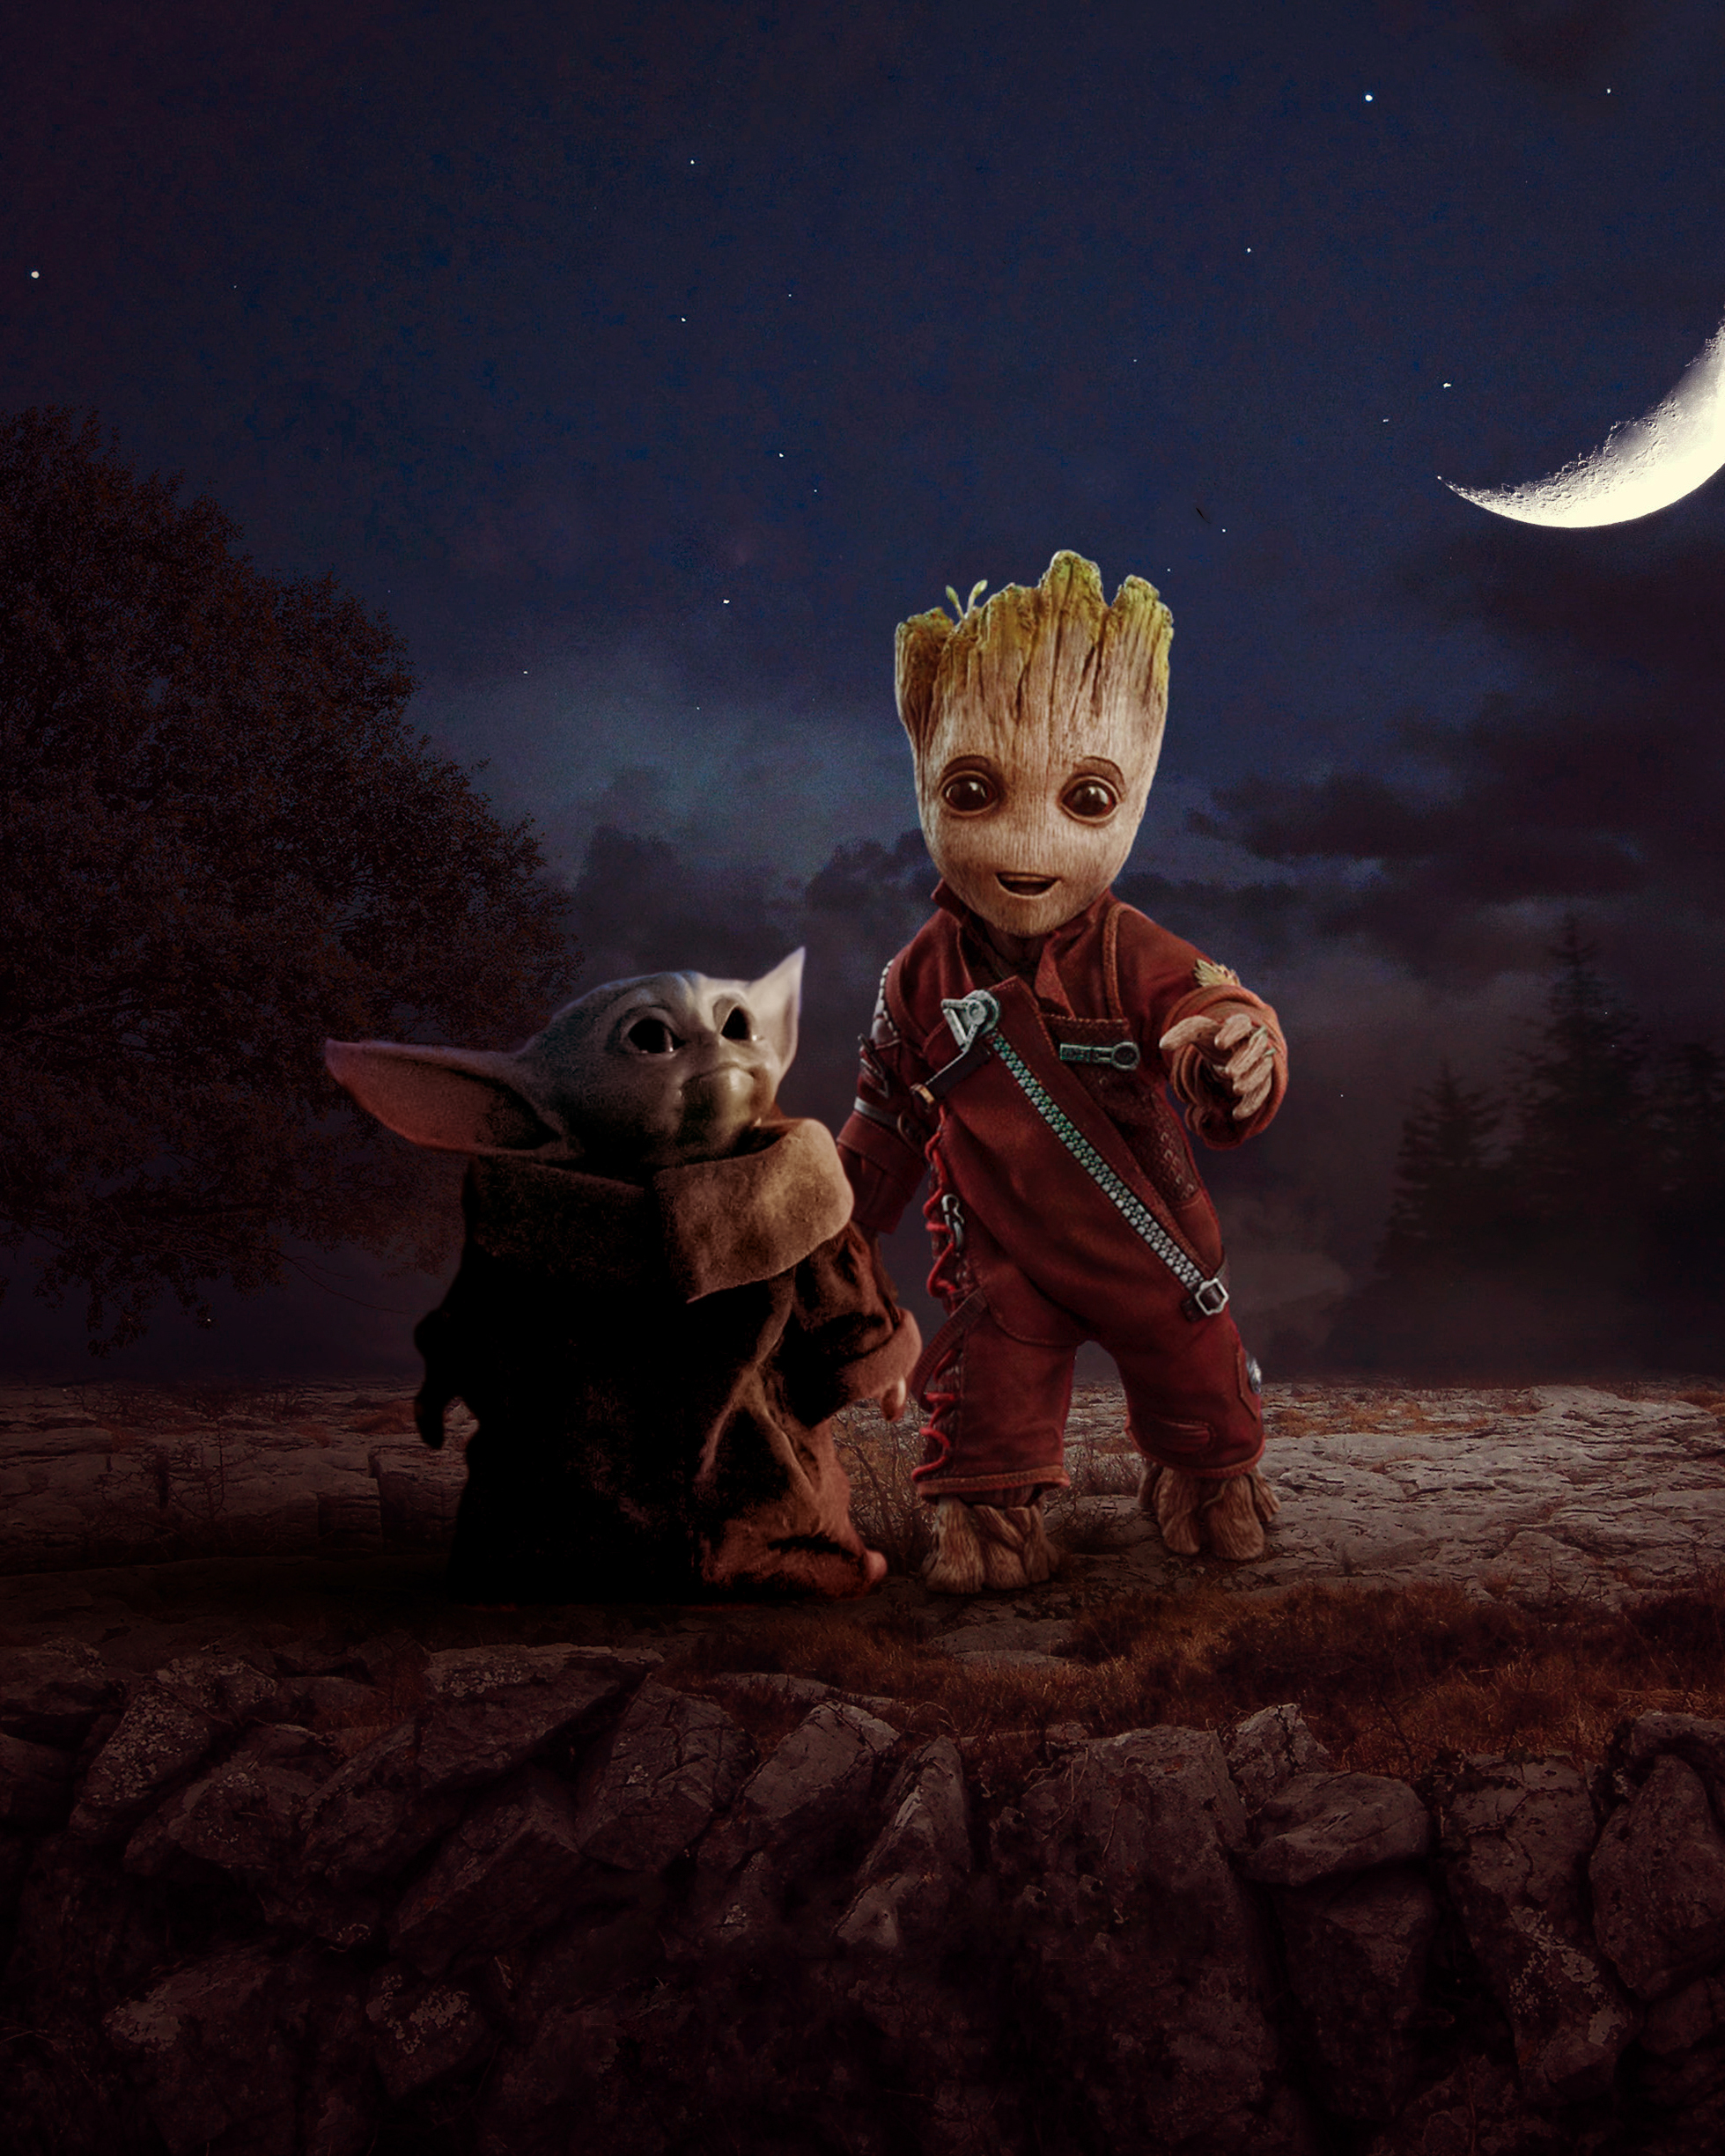 Groot And Baby Yoda Wallpaper Hd Superheroes 4k Wallpapers Images Photos And Background